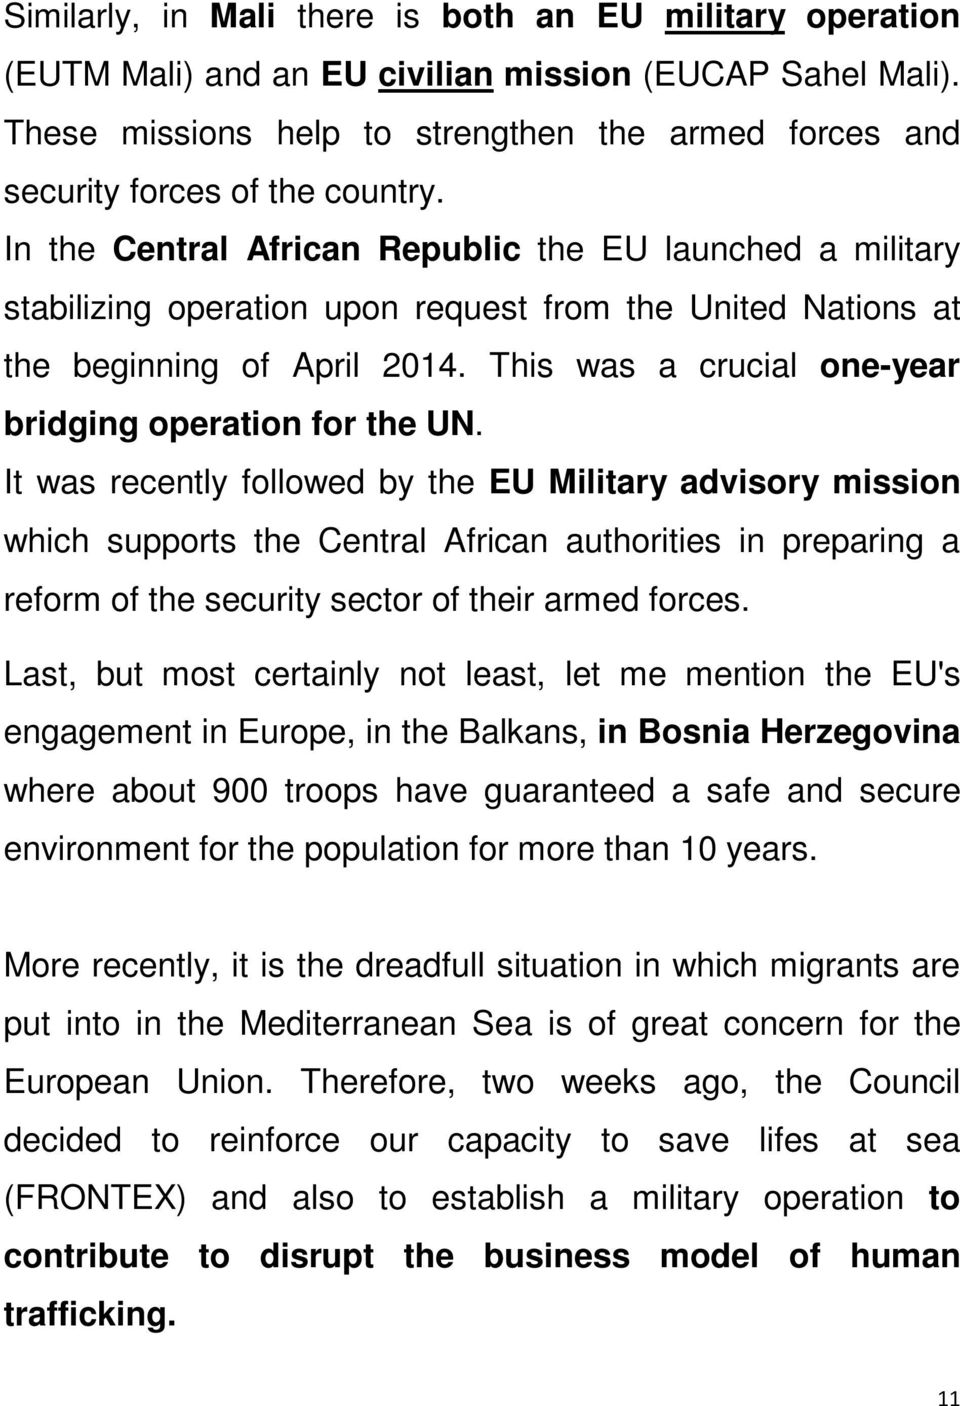 In the Central African Republic the EU launched a military stabilizing operation upon request from the United Nations at the beginning of April 2014.